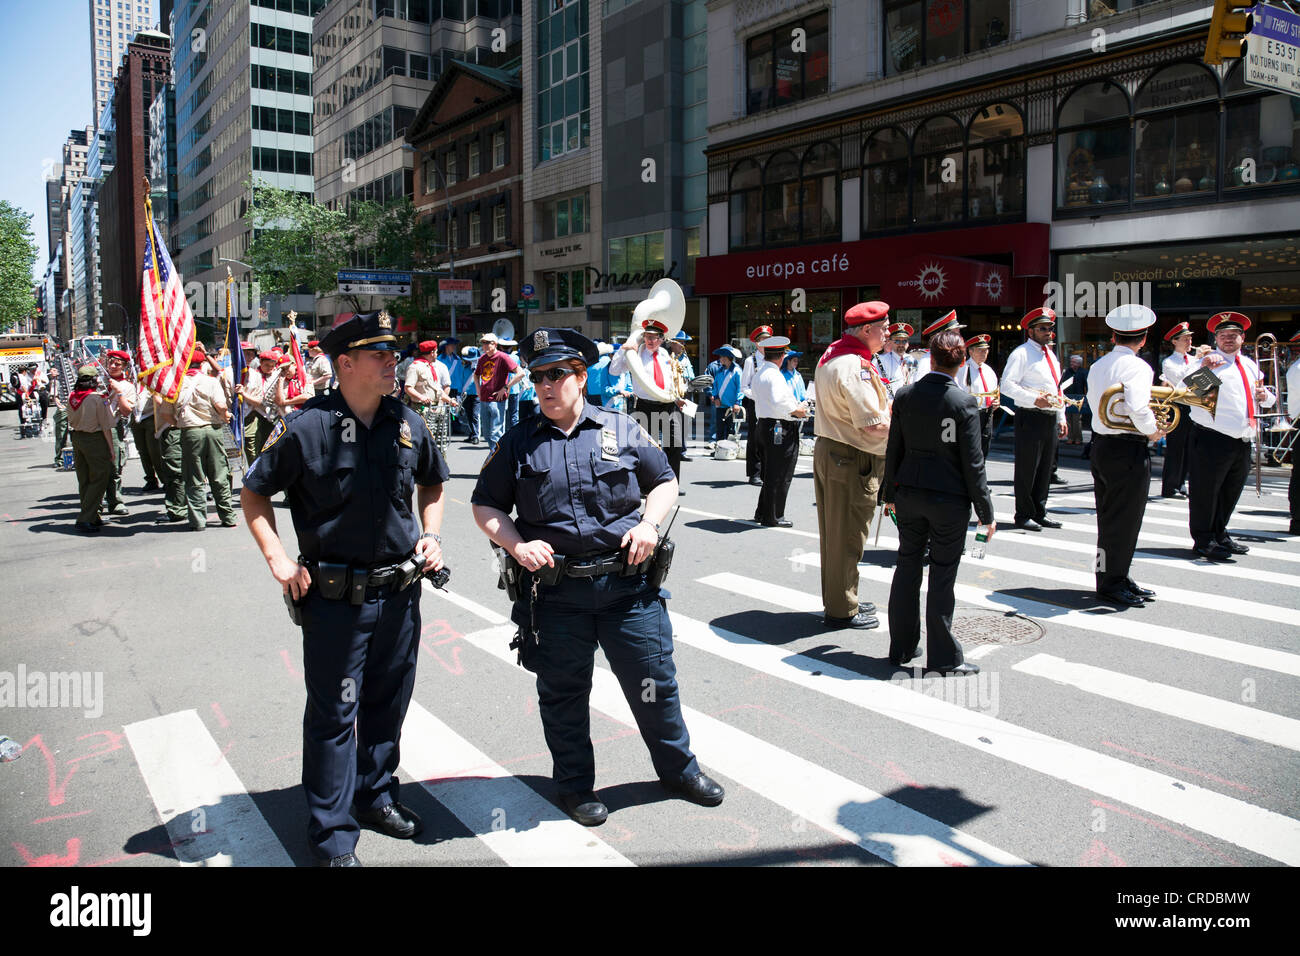 Nypd Band Stock Photos & Nypd Band Stock Images - Alamy